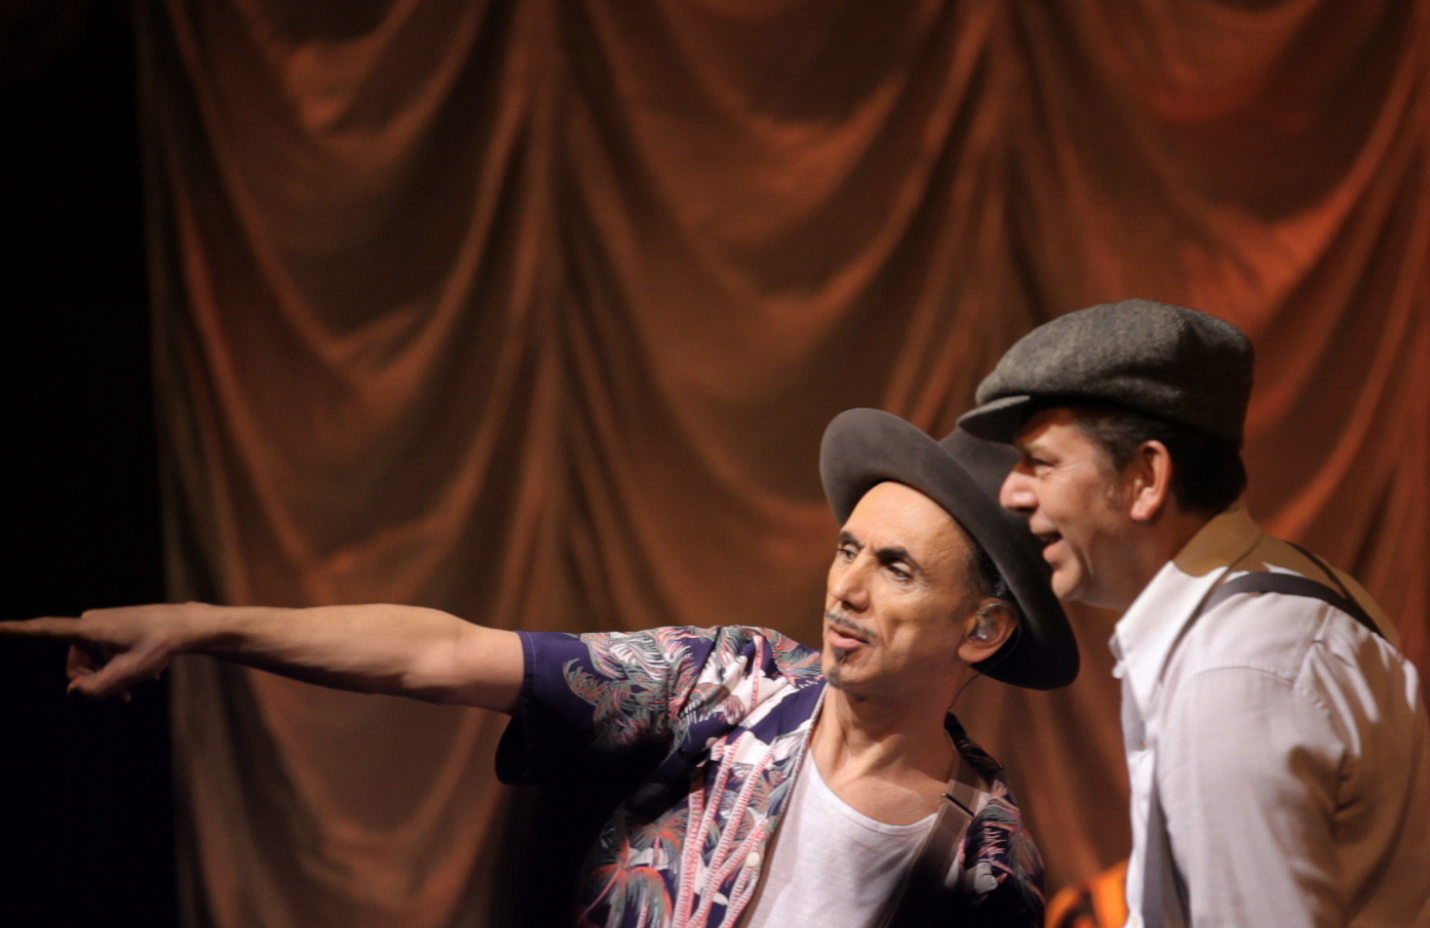 Dexys' Kevin Rowland and Pete Williams